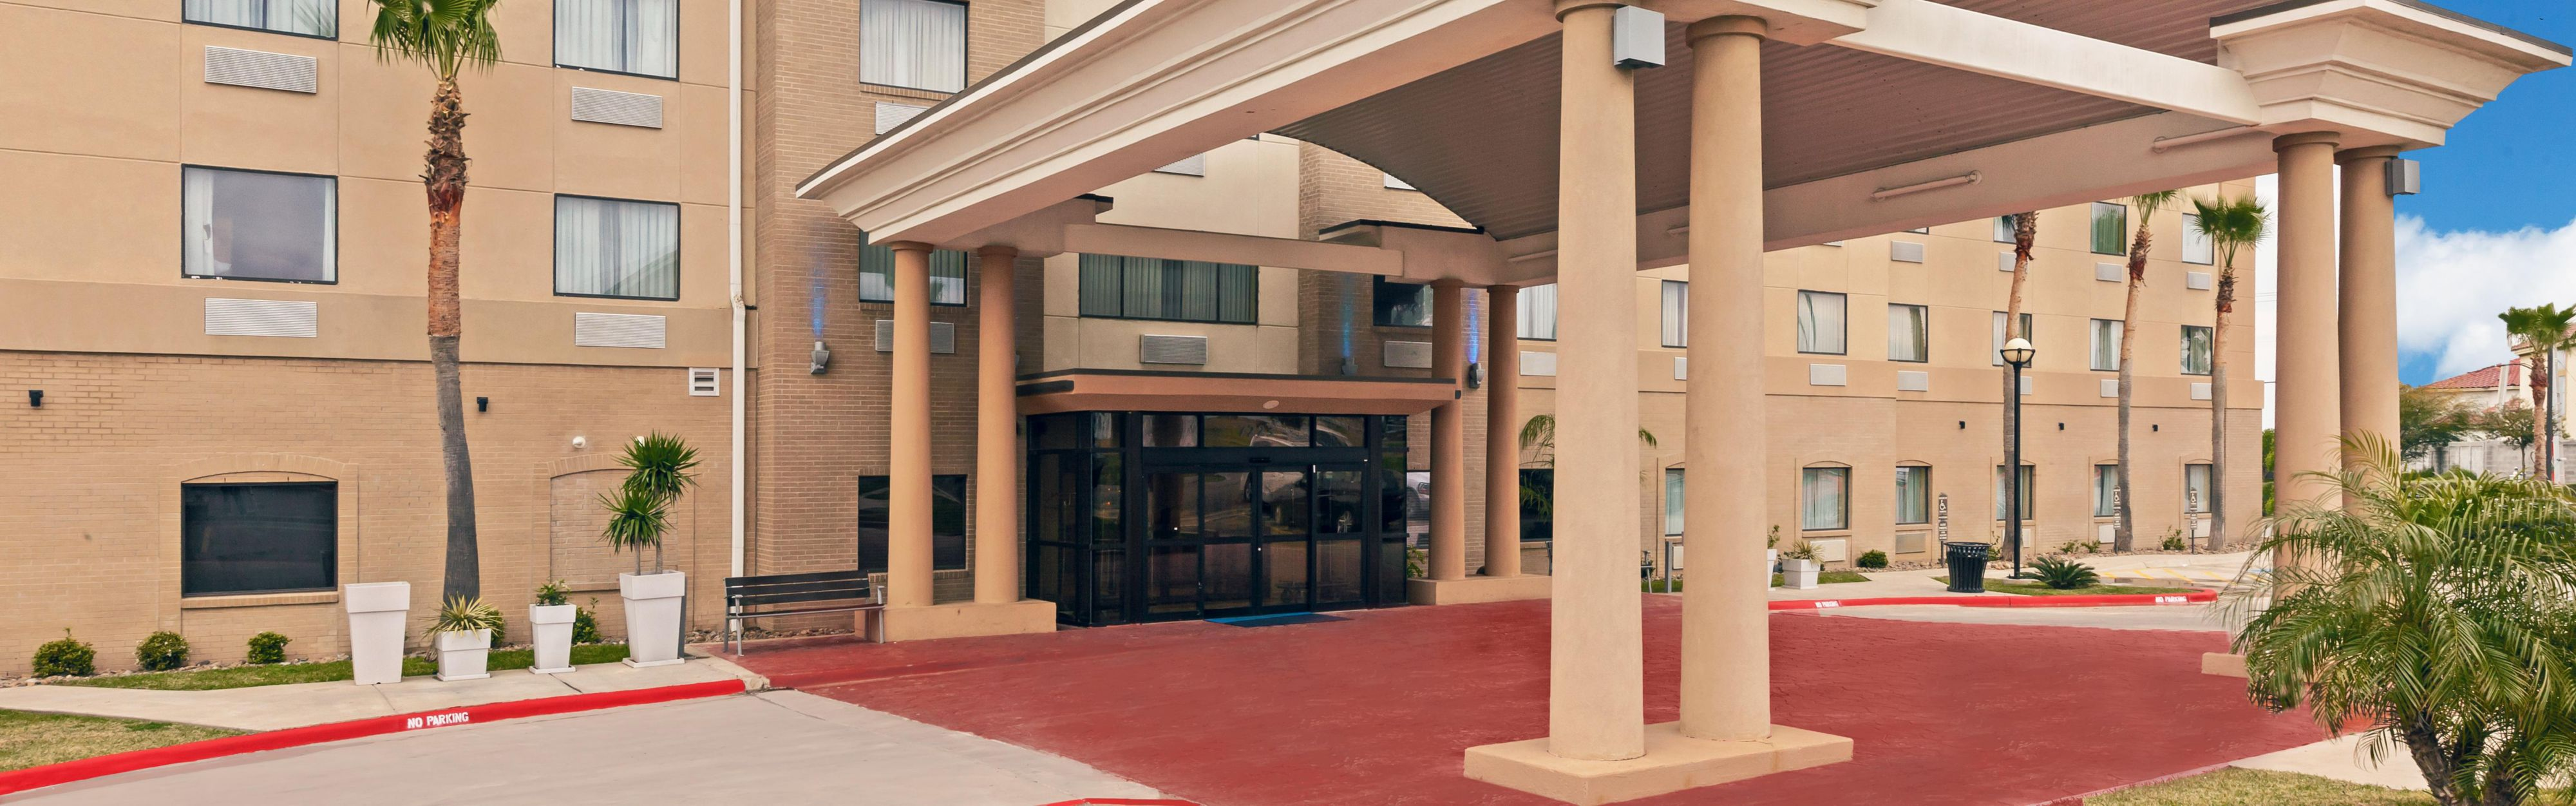 Holiday Inn Express & Suites Laredo-Event Center Area image 0